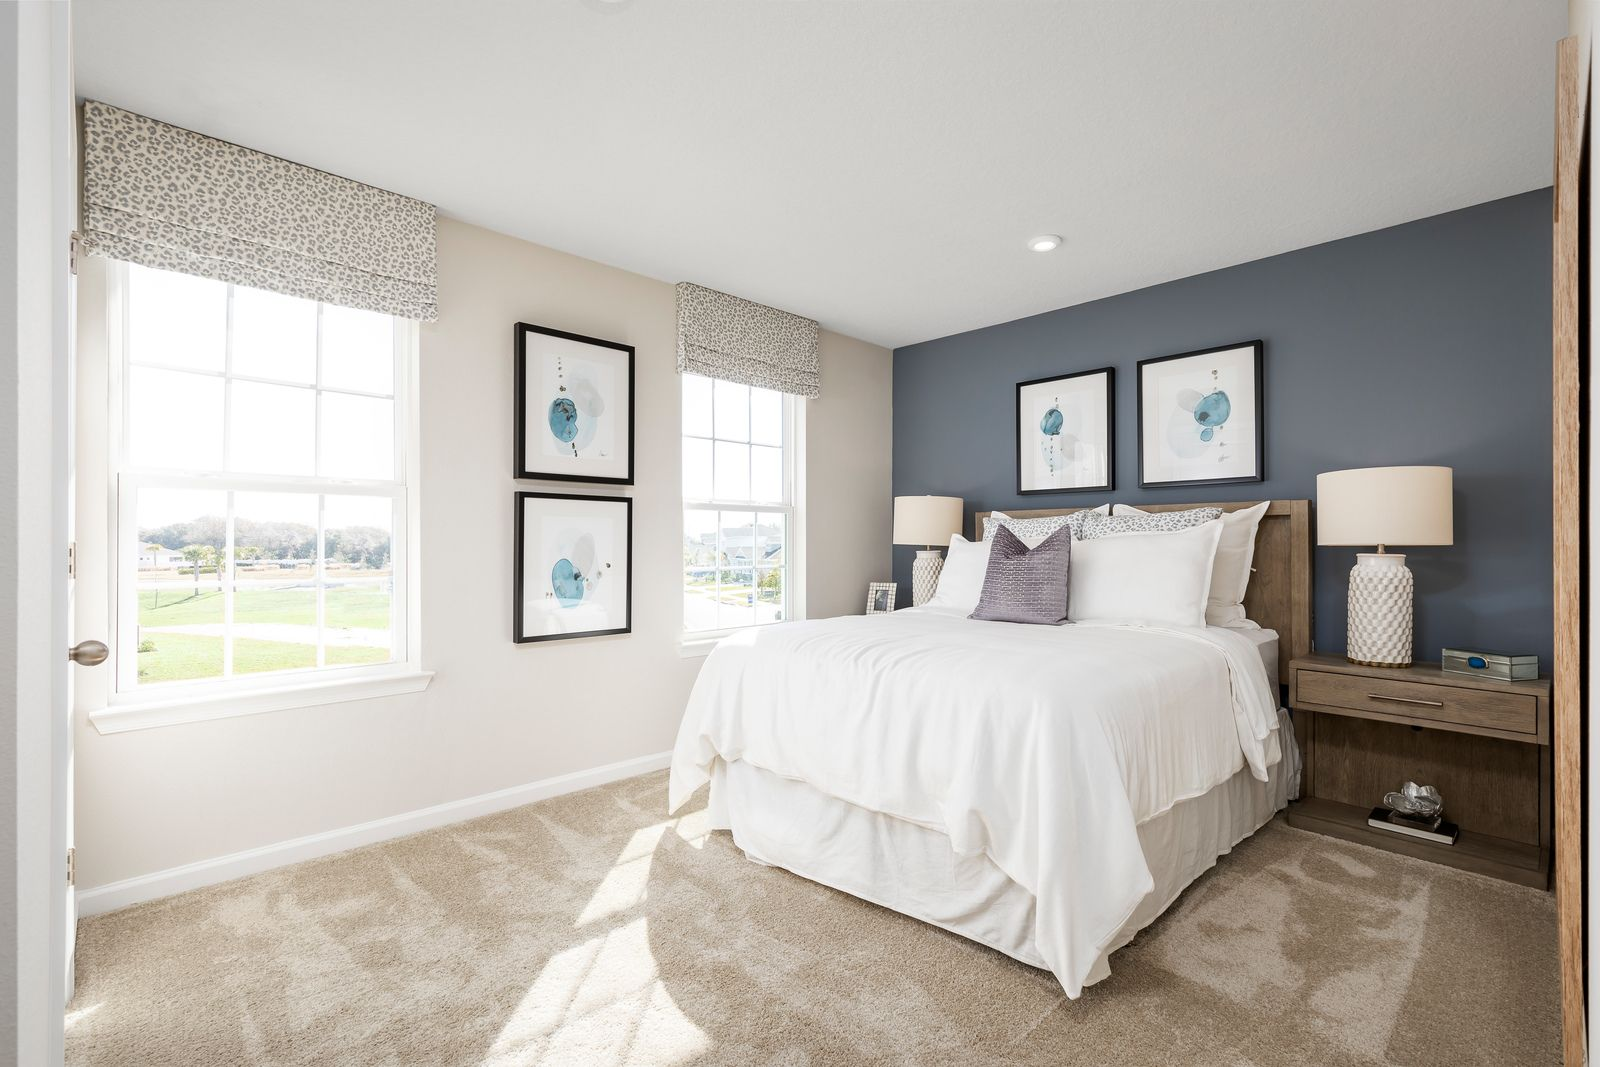 Bedroom featured in the Windermere By Ryan Homes in Orlando, FL